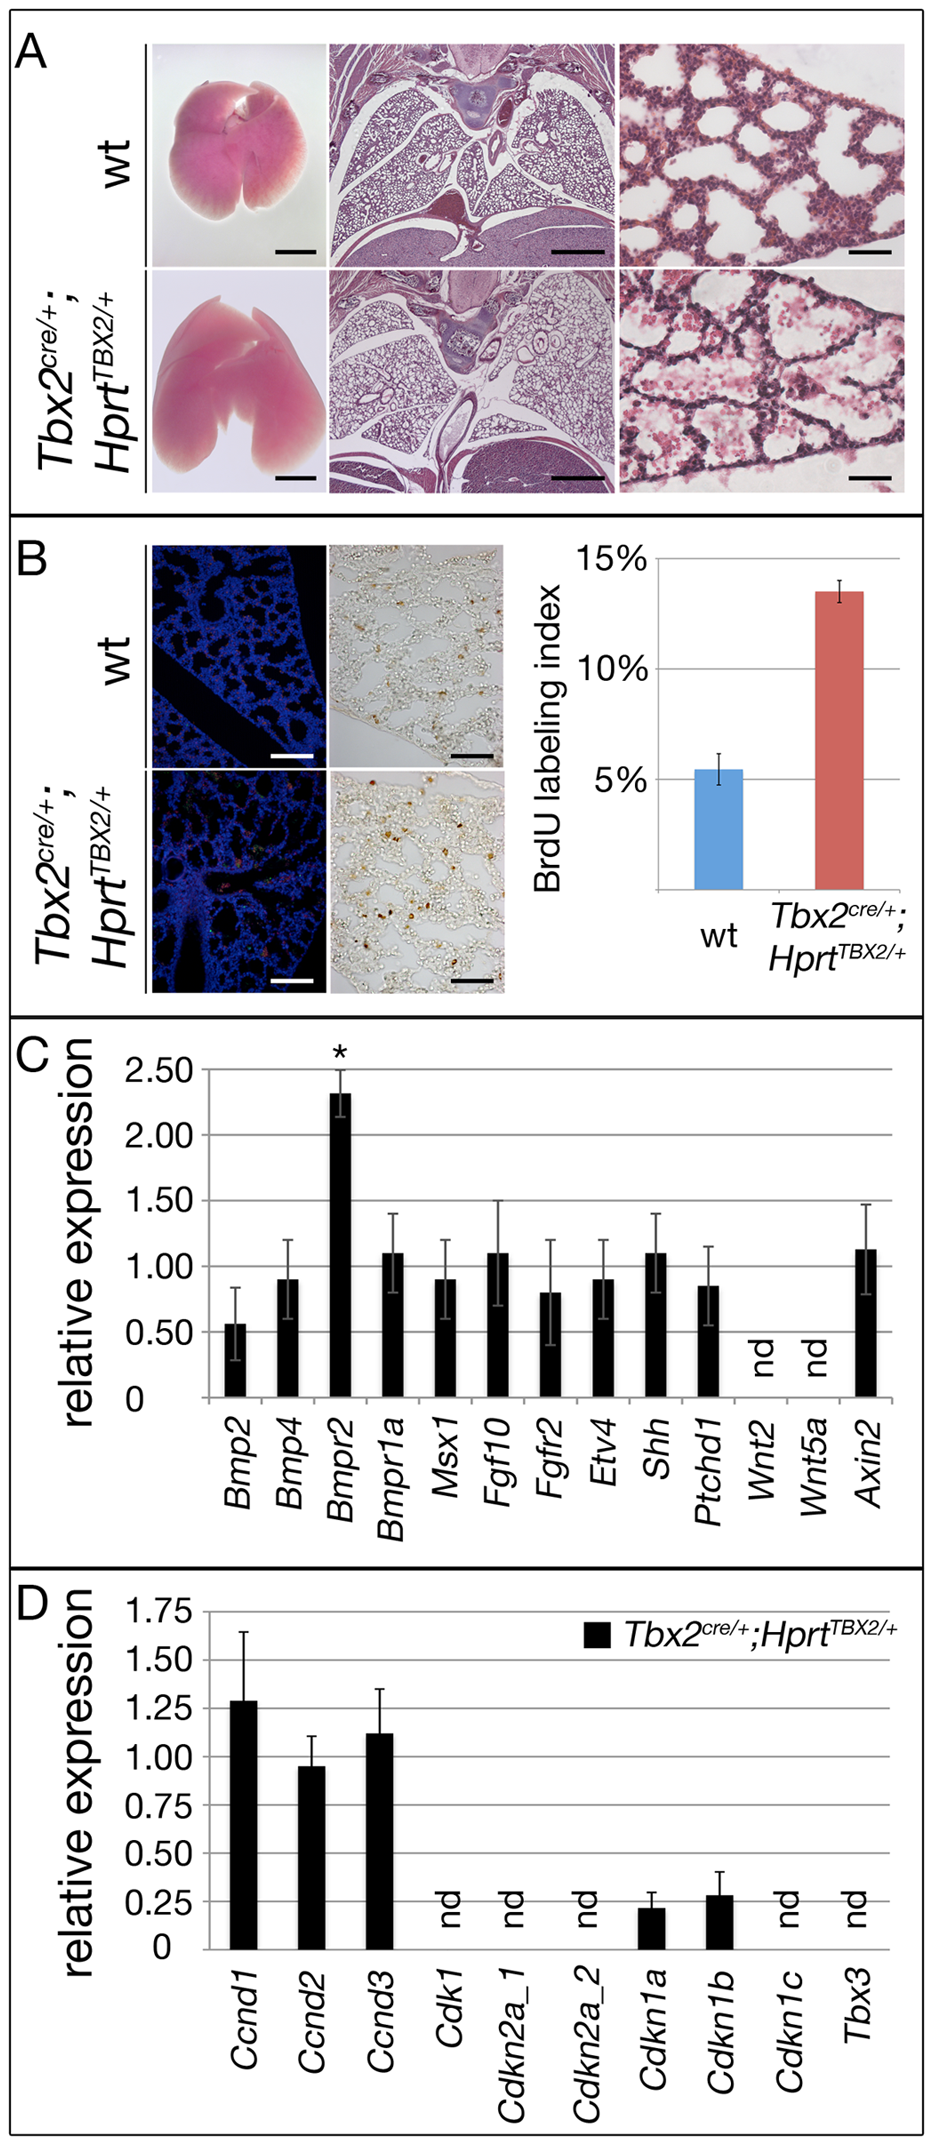 Prolonged expression of TBX2 maintains proliferation of mesenchymal progenitor cells in the embryonic lung.